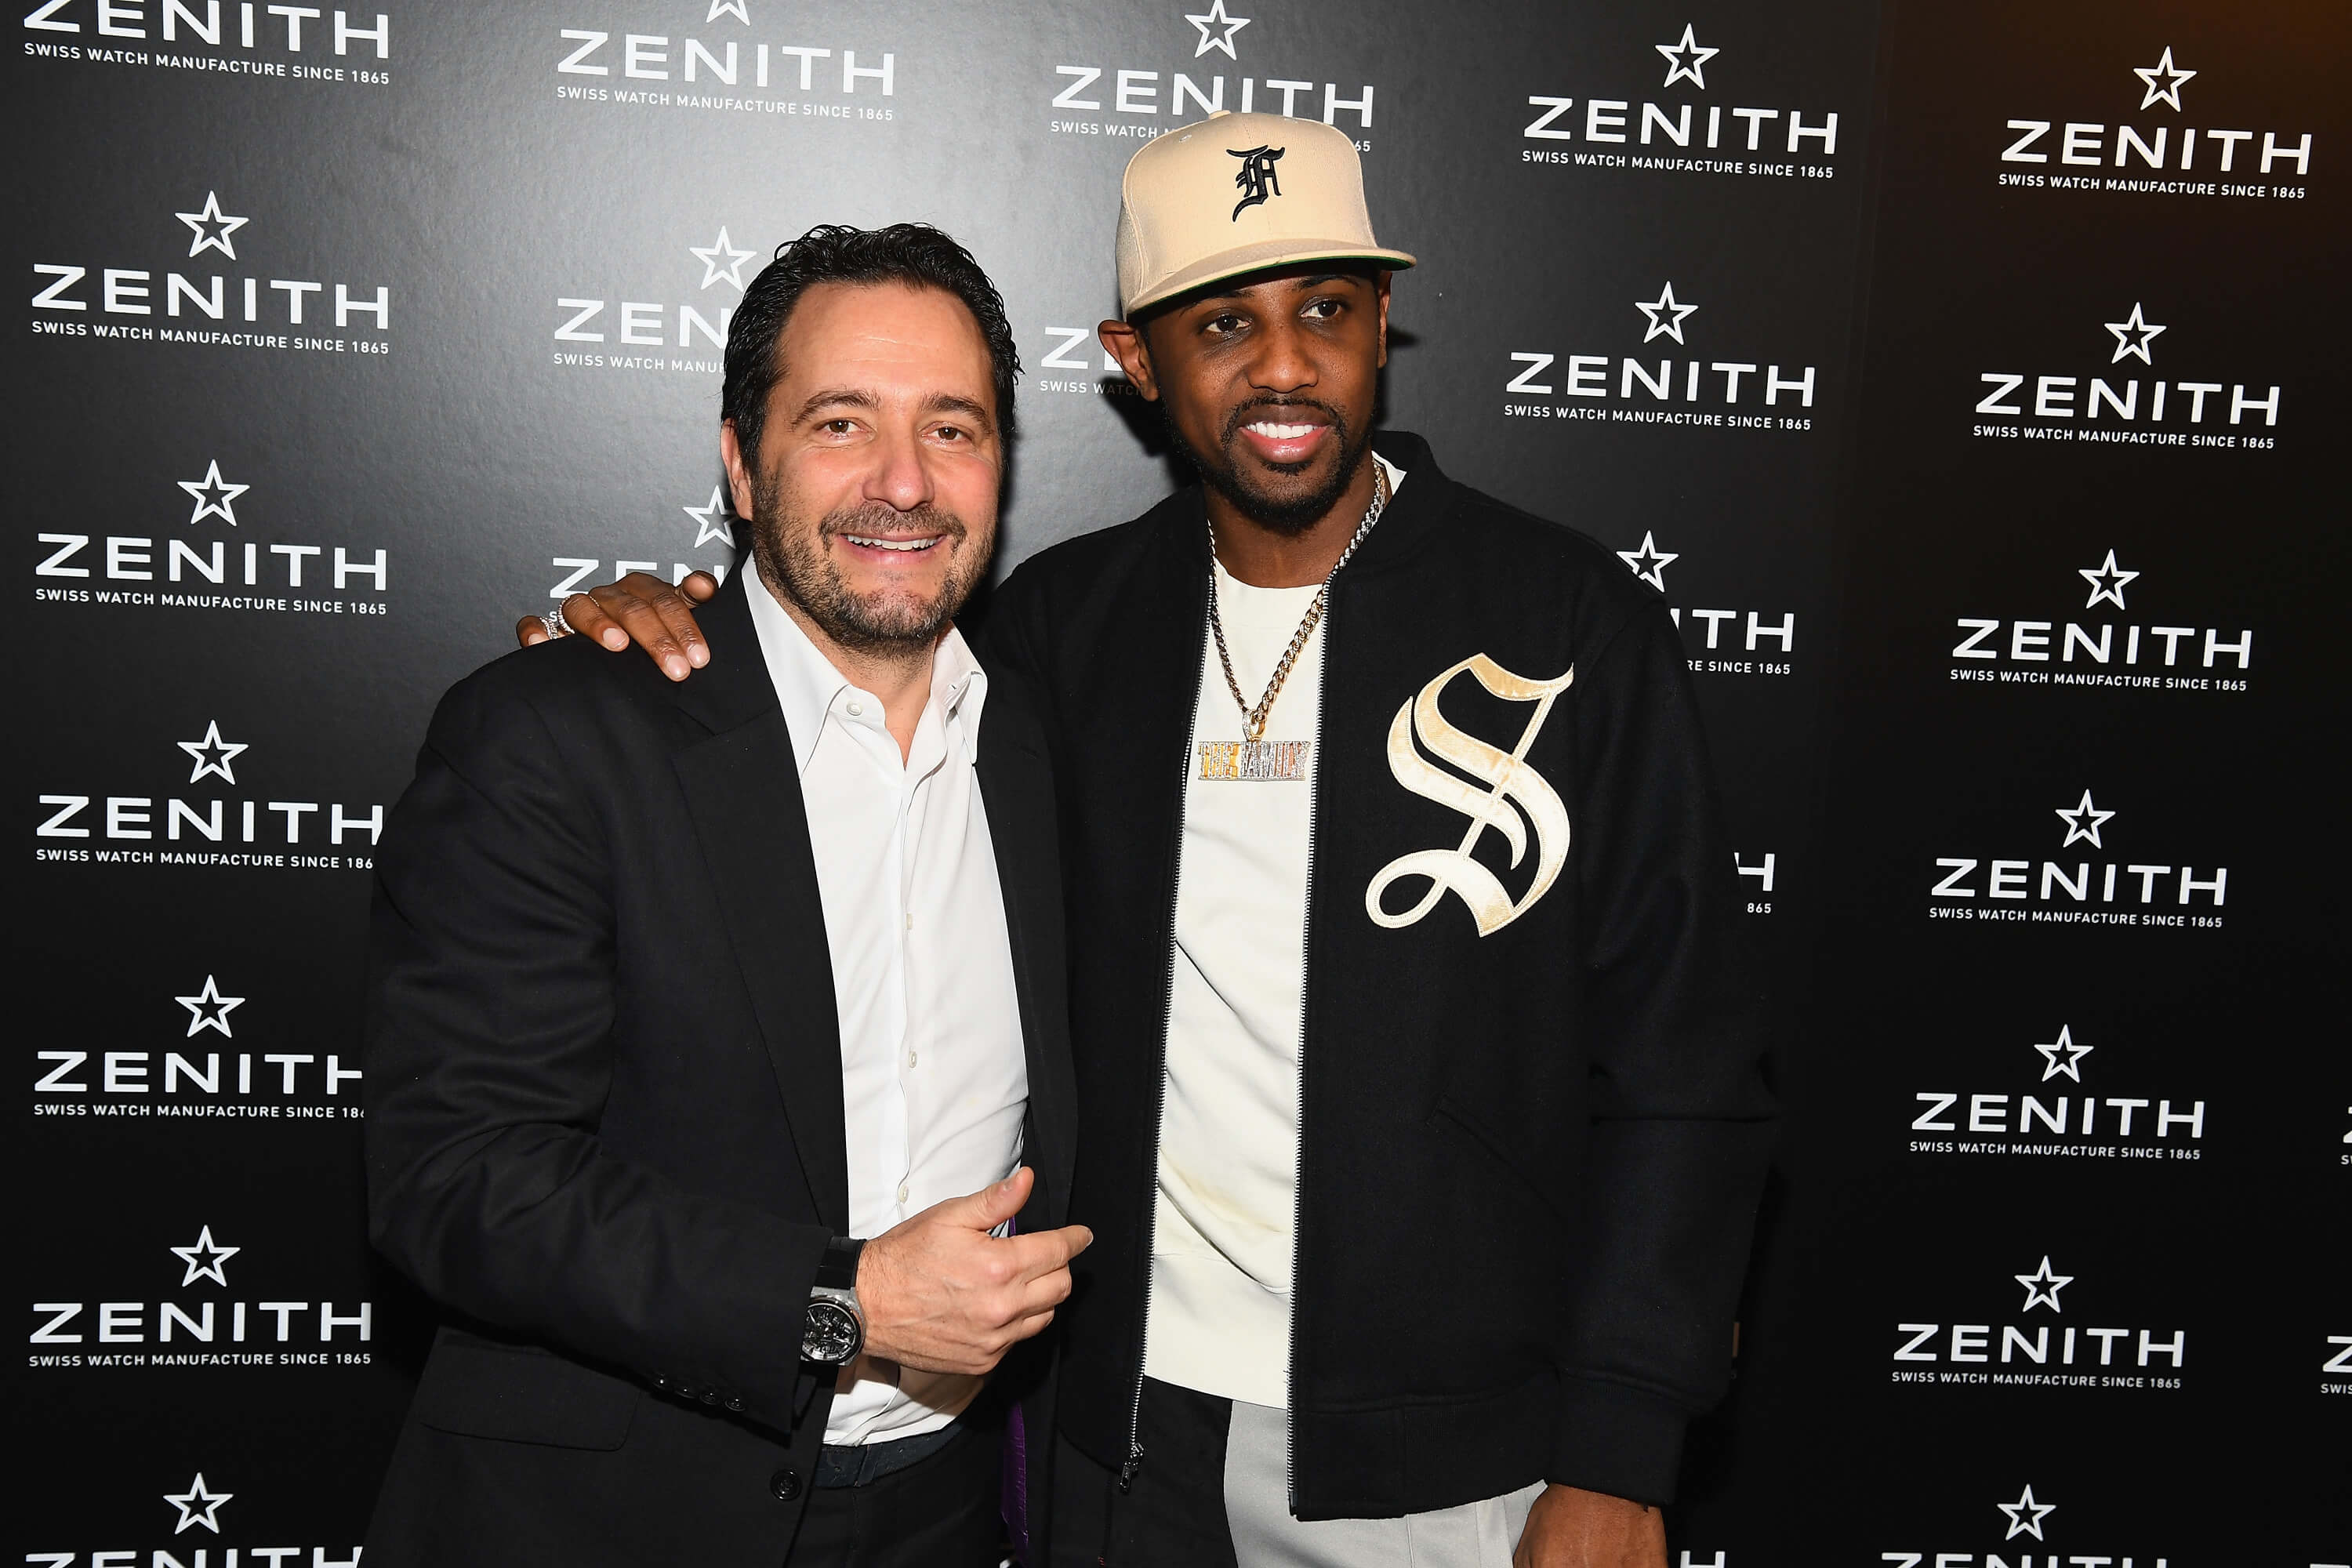 ZENITH - Julien Tornare, CEO of Zenith and rapper Fabulous - Getty Images